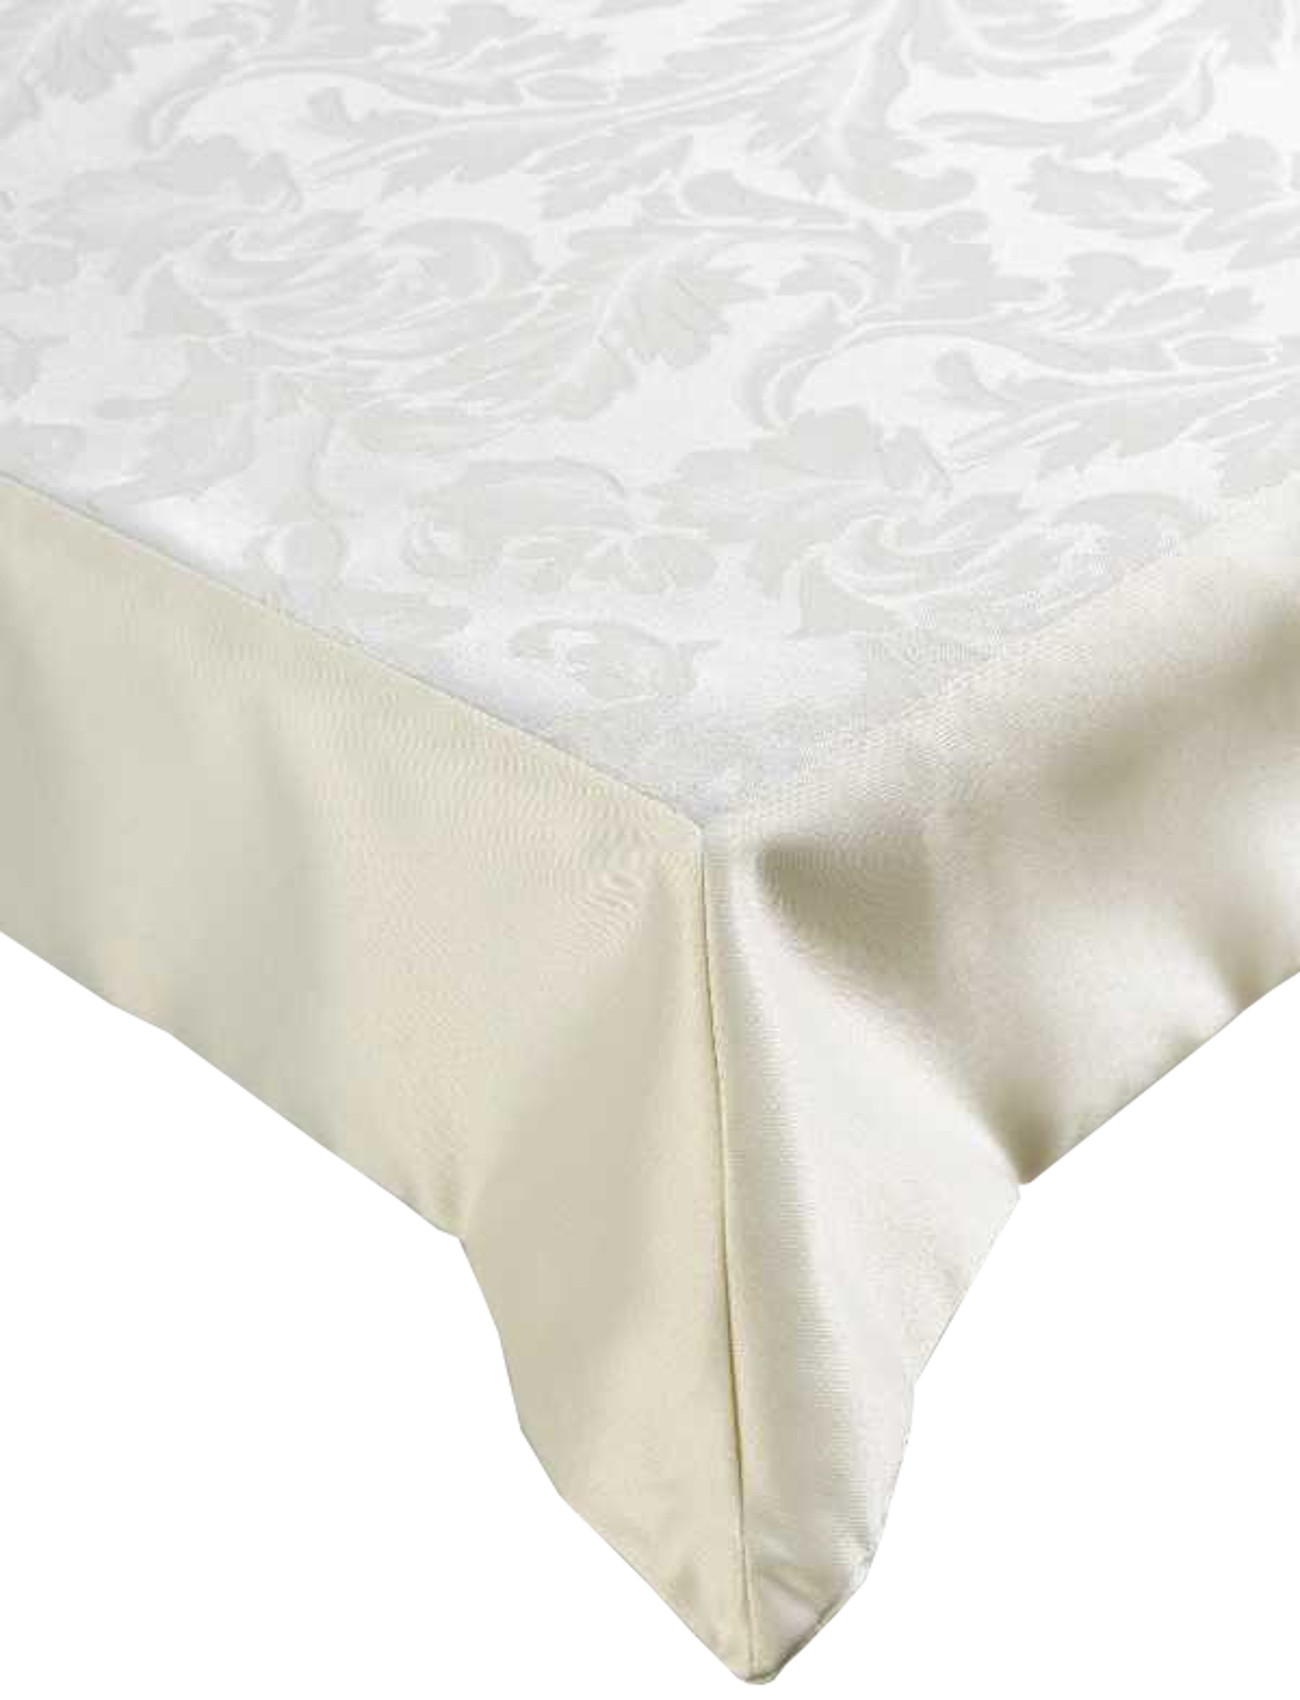 Cream Jacquard Damask Large Tablecloth Kitchen Home Cotton  : sarah damask tablecloth extra large banquet home hotel quality table linen cream from www.ebay.co.uk size 1300 x 1700 jpeg 162kB